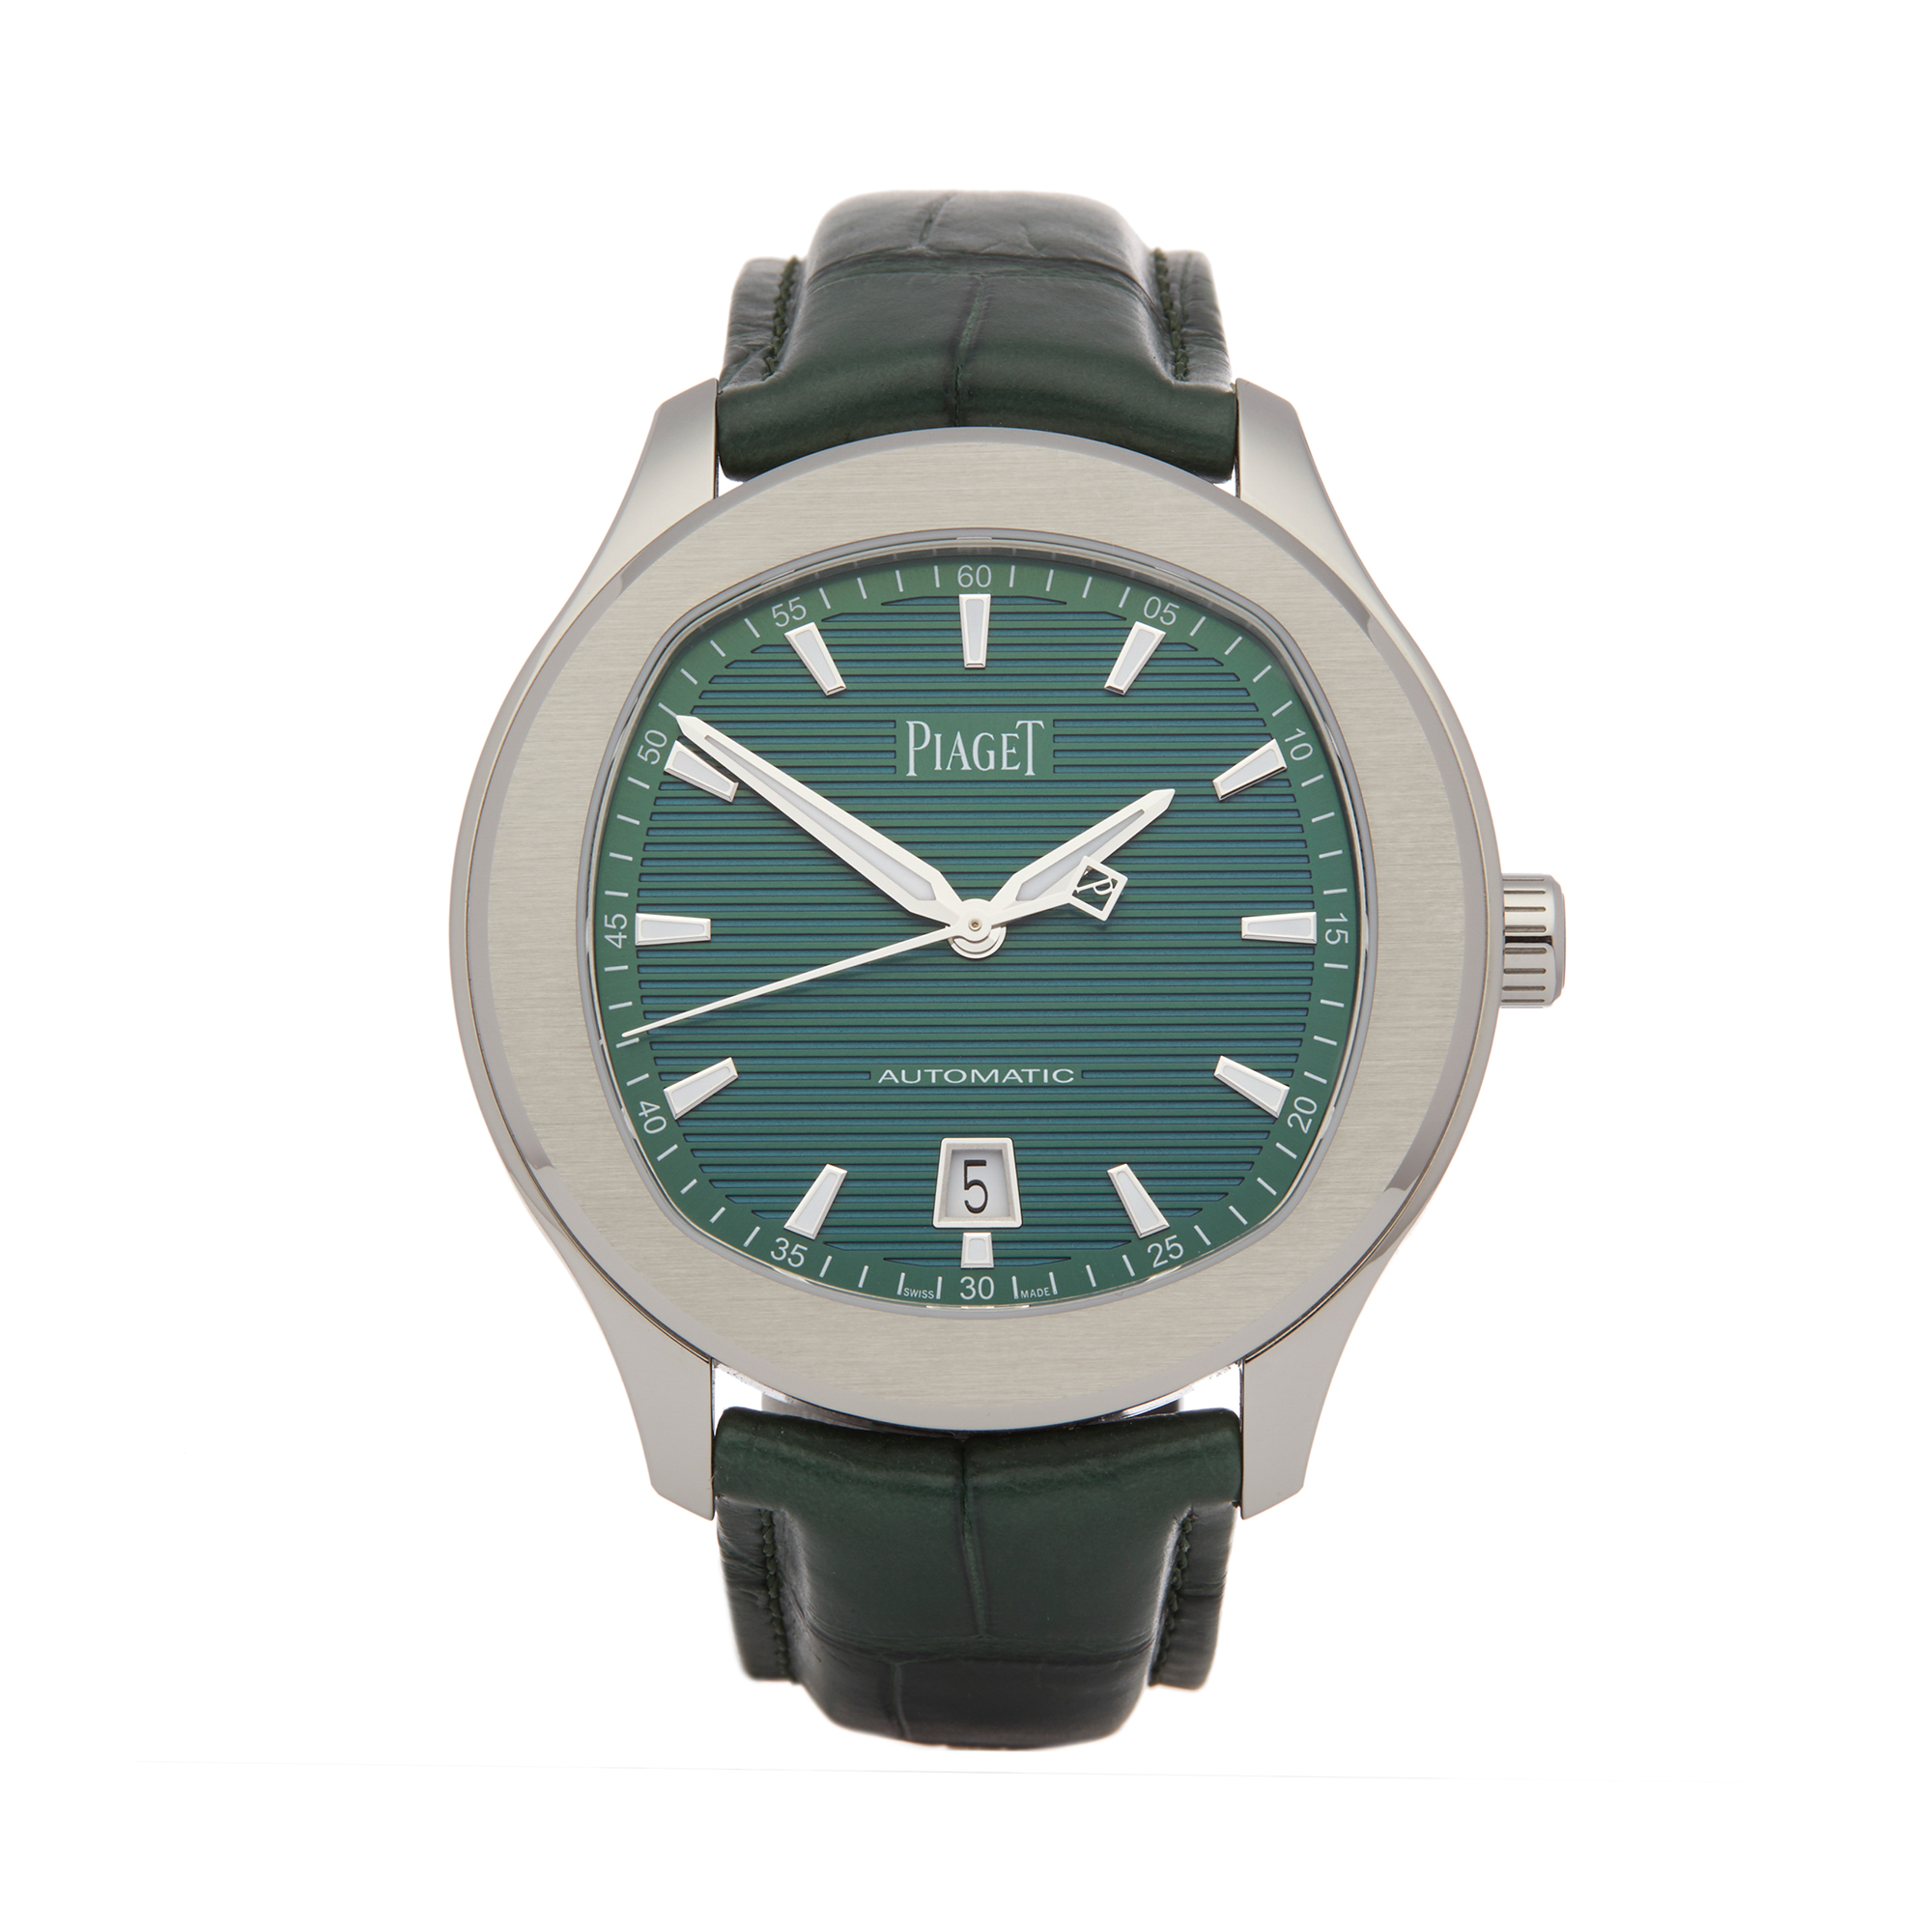 Piaget Polo S GOA44001 Men Stainless Steel Ltd Edition 500 Pieces Watch - Image 8 of 8